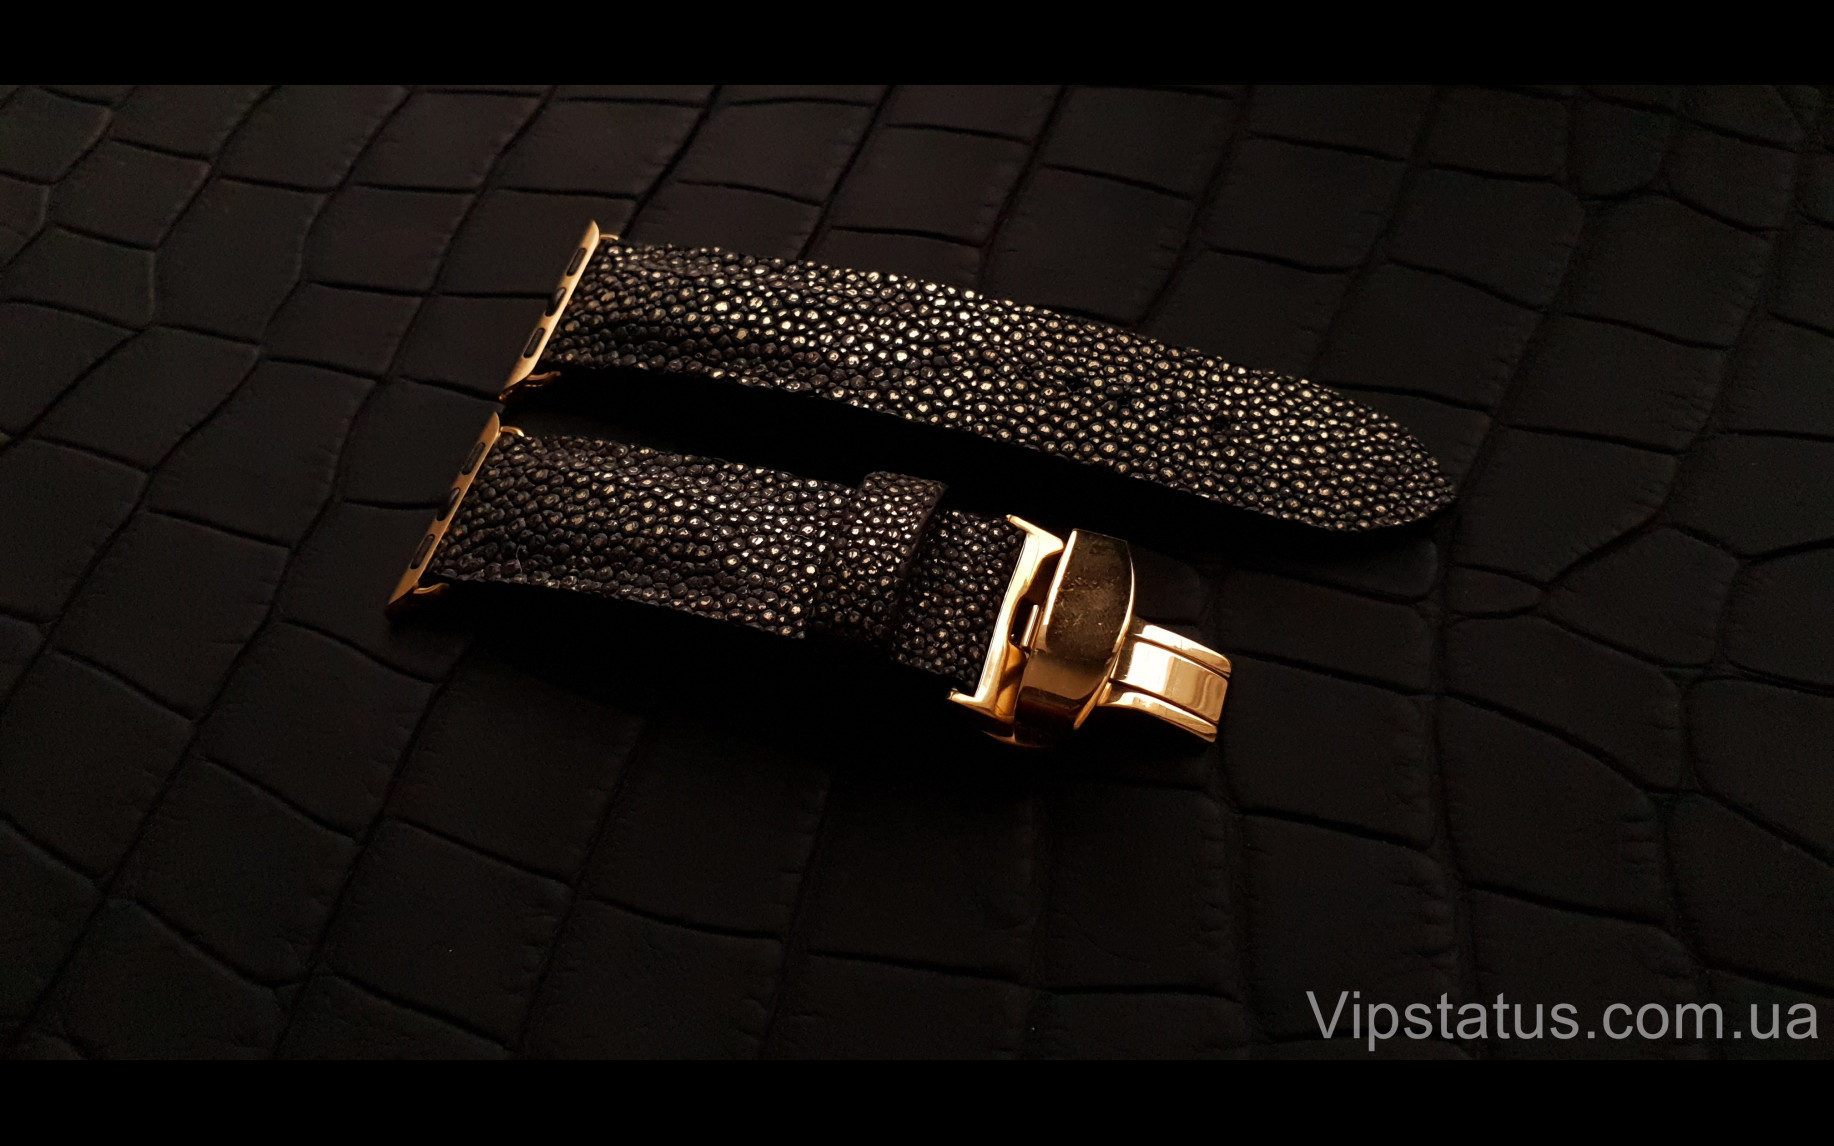 Elite Экзотический ремешок для часов Gold Metallic кожа ската Gold Metallic Exotic Stingray Leather Strap image 3